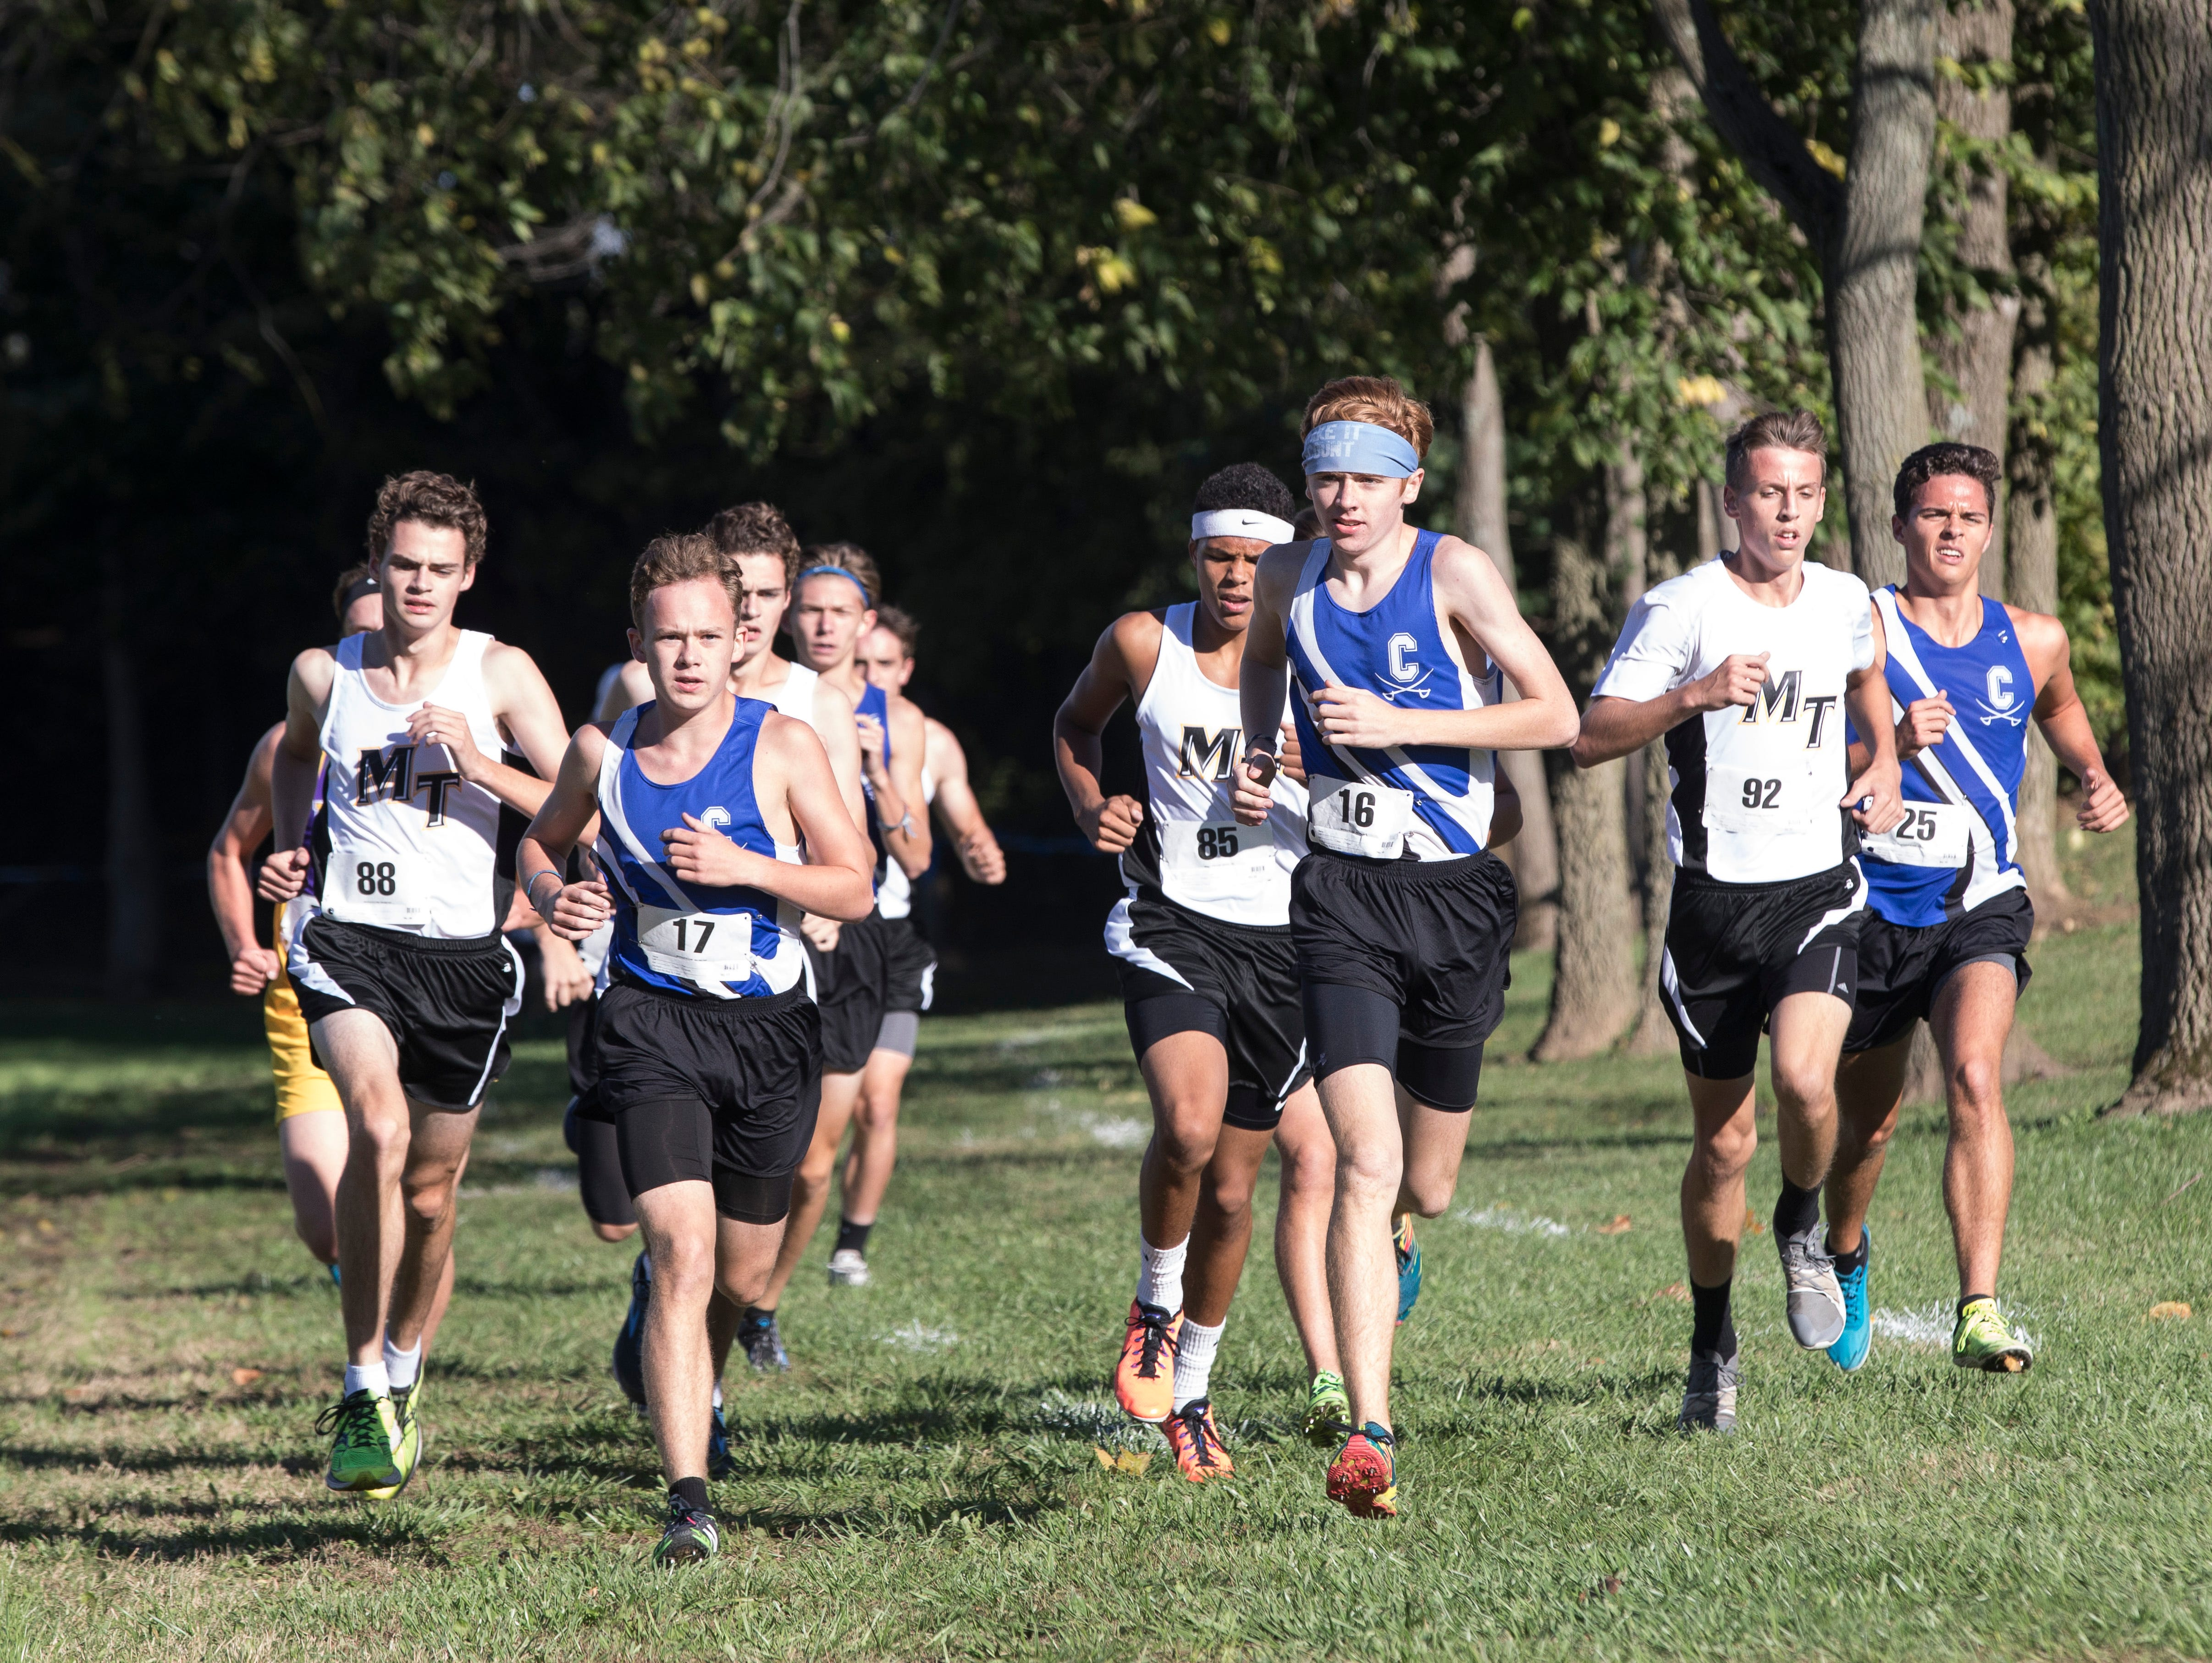 Andrew McCallum, along with fellow Chillicothe runners Ricky Villareal and Oscar Mikus, lead the pack during the first half of the 2018 Frontier Athletic Conference cross-country race.